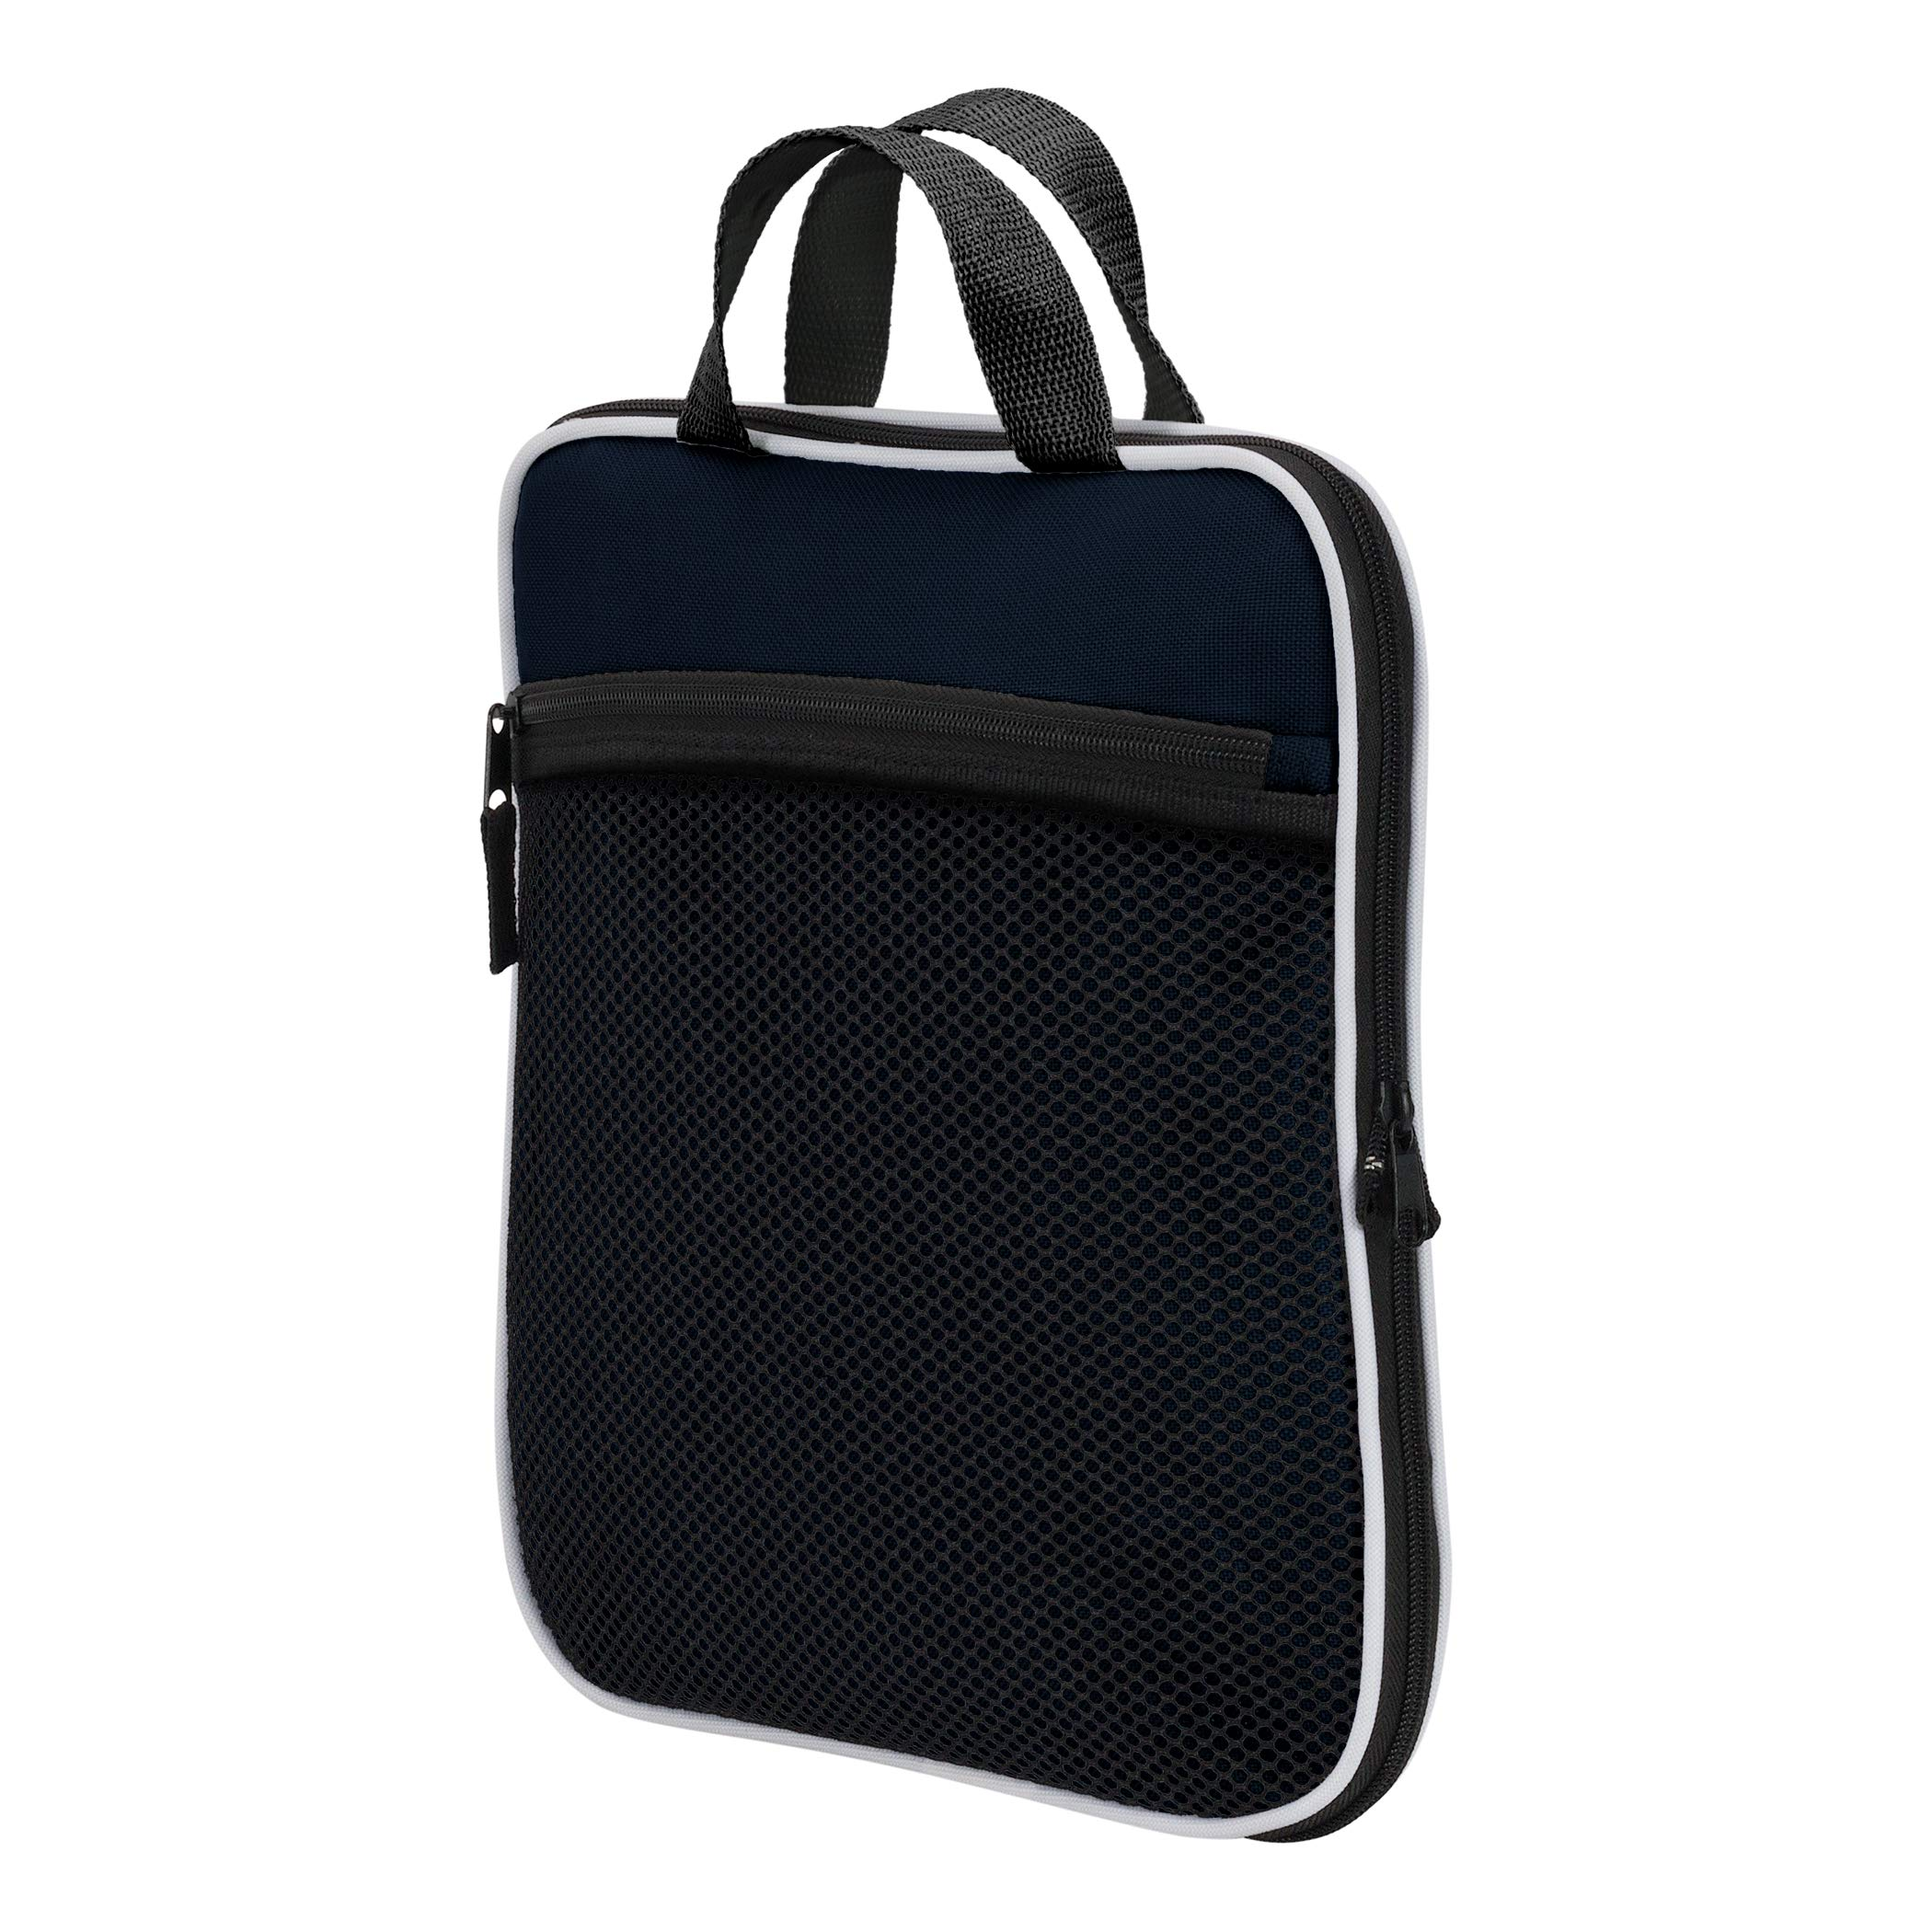 NFL Houston Texans NFL Steal Duffel, Navy, Measures 28'' in Length, 11'' in Width & 12'' in Height by The Northwest Company (Image #5)